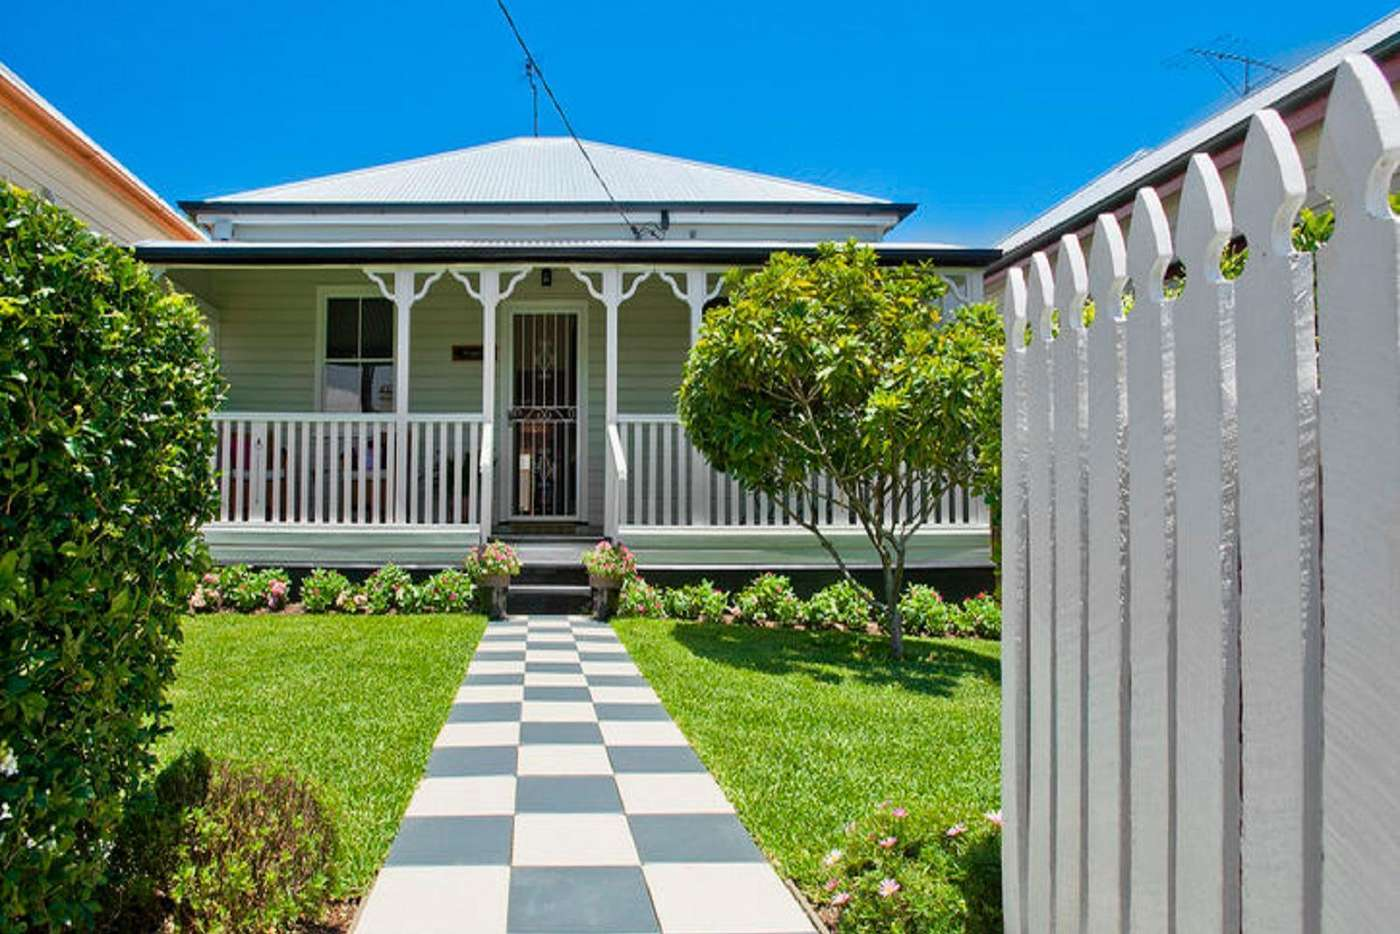 Main view of Homely house listing, 40 Eleanor Street, East Toowoomba QLD 4350